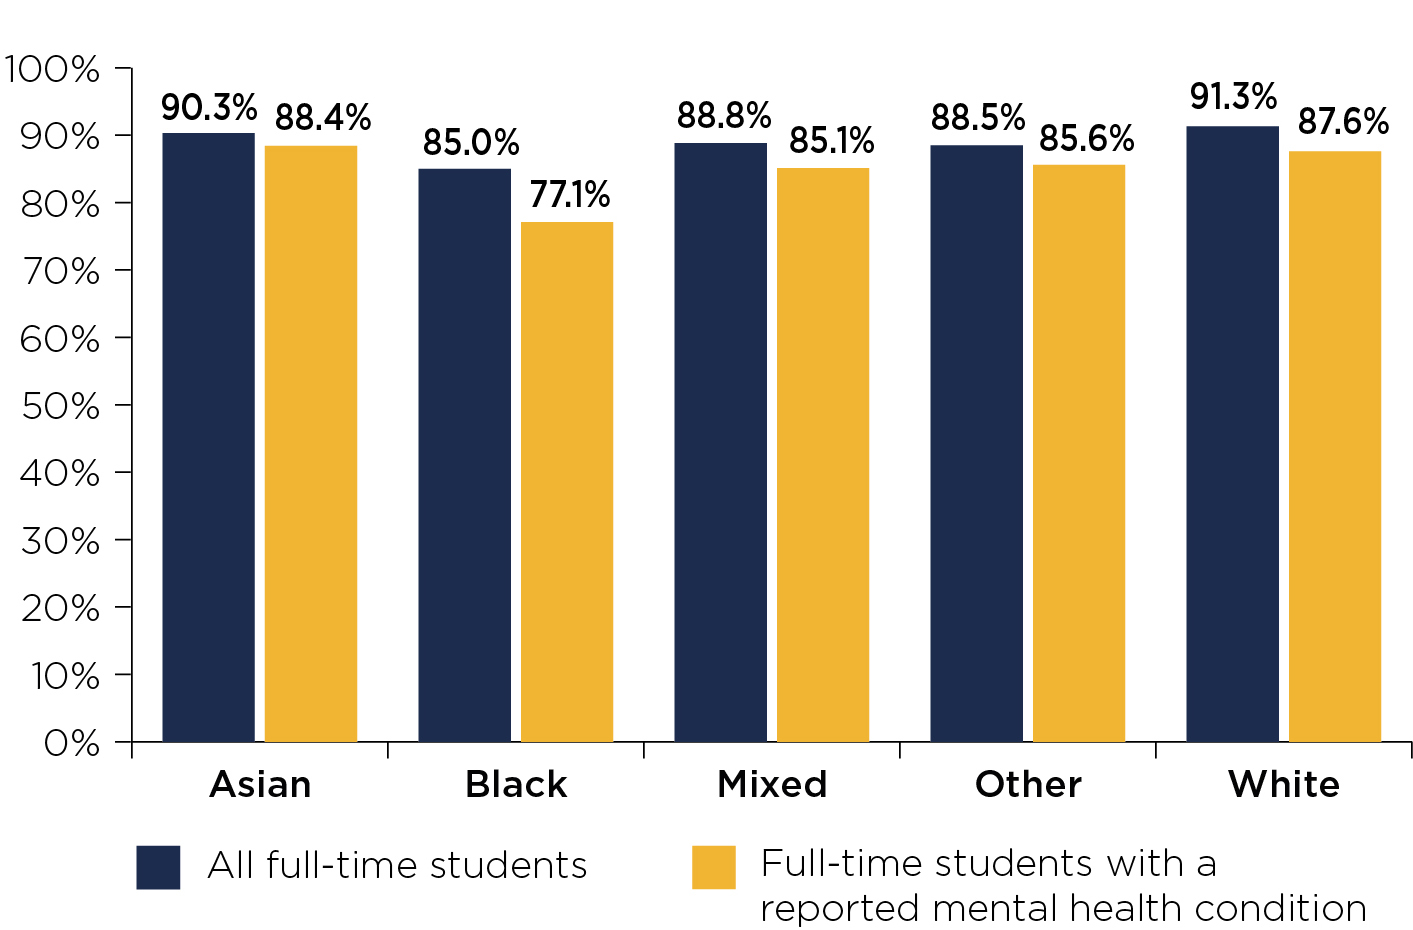 Figure 2: Continuation rates of full-time students by ethnicity for courses starting in 2016-17